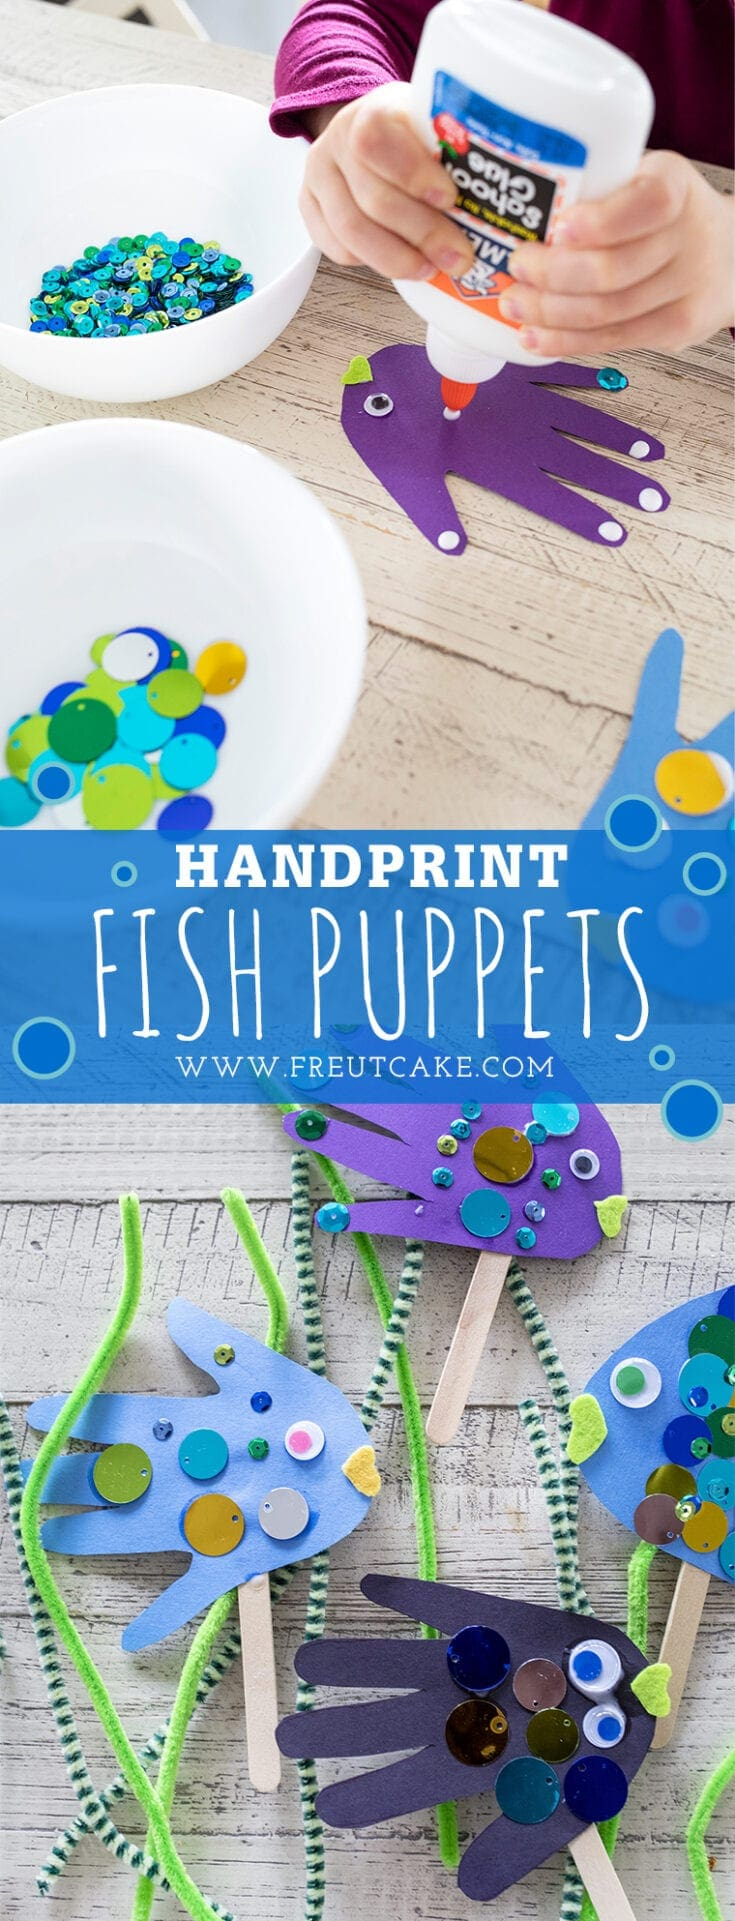 Looking for an inside craft? Turn your child's handprint into sparkling underwater fish puppets with this easy and fun tutorial.